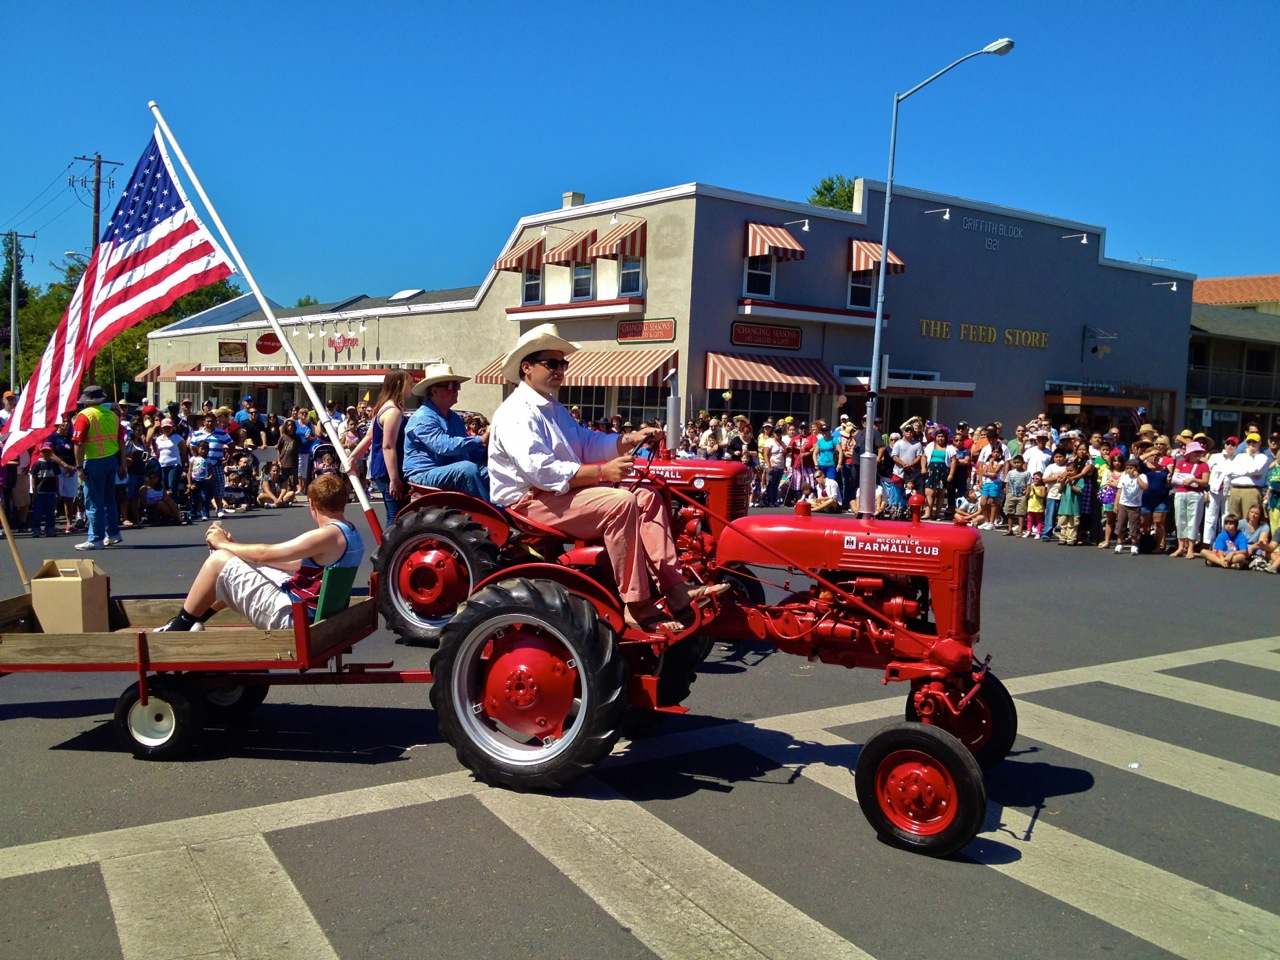 Sonoma A Mayberry For Everyone Mark Vogler Farmall Cub Wiring Harness Routing Cant Have Small Town Parade Without Tractors